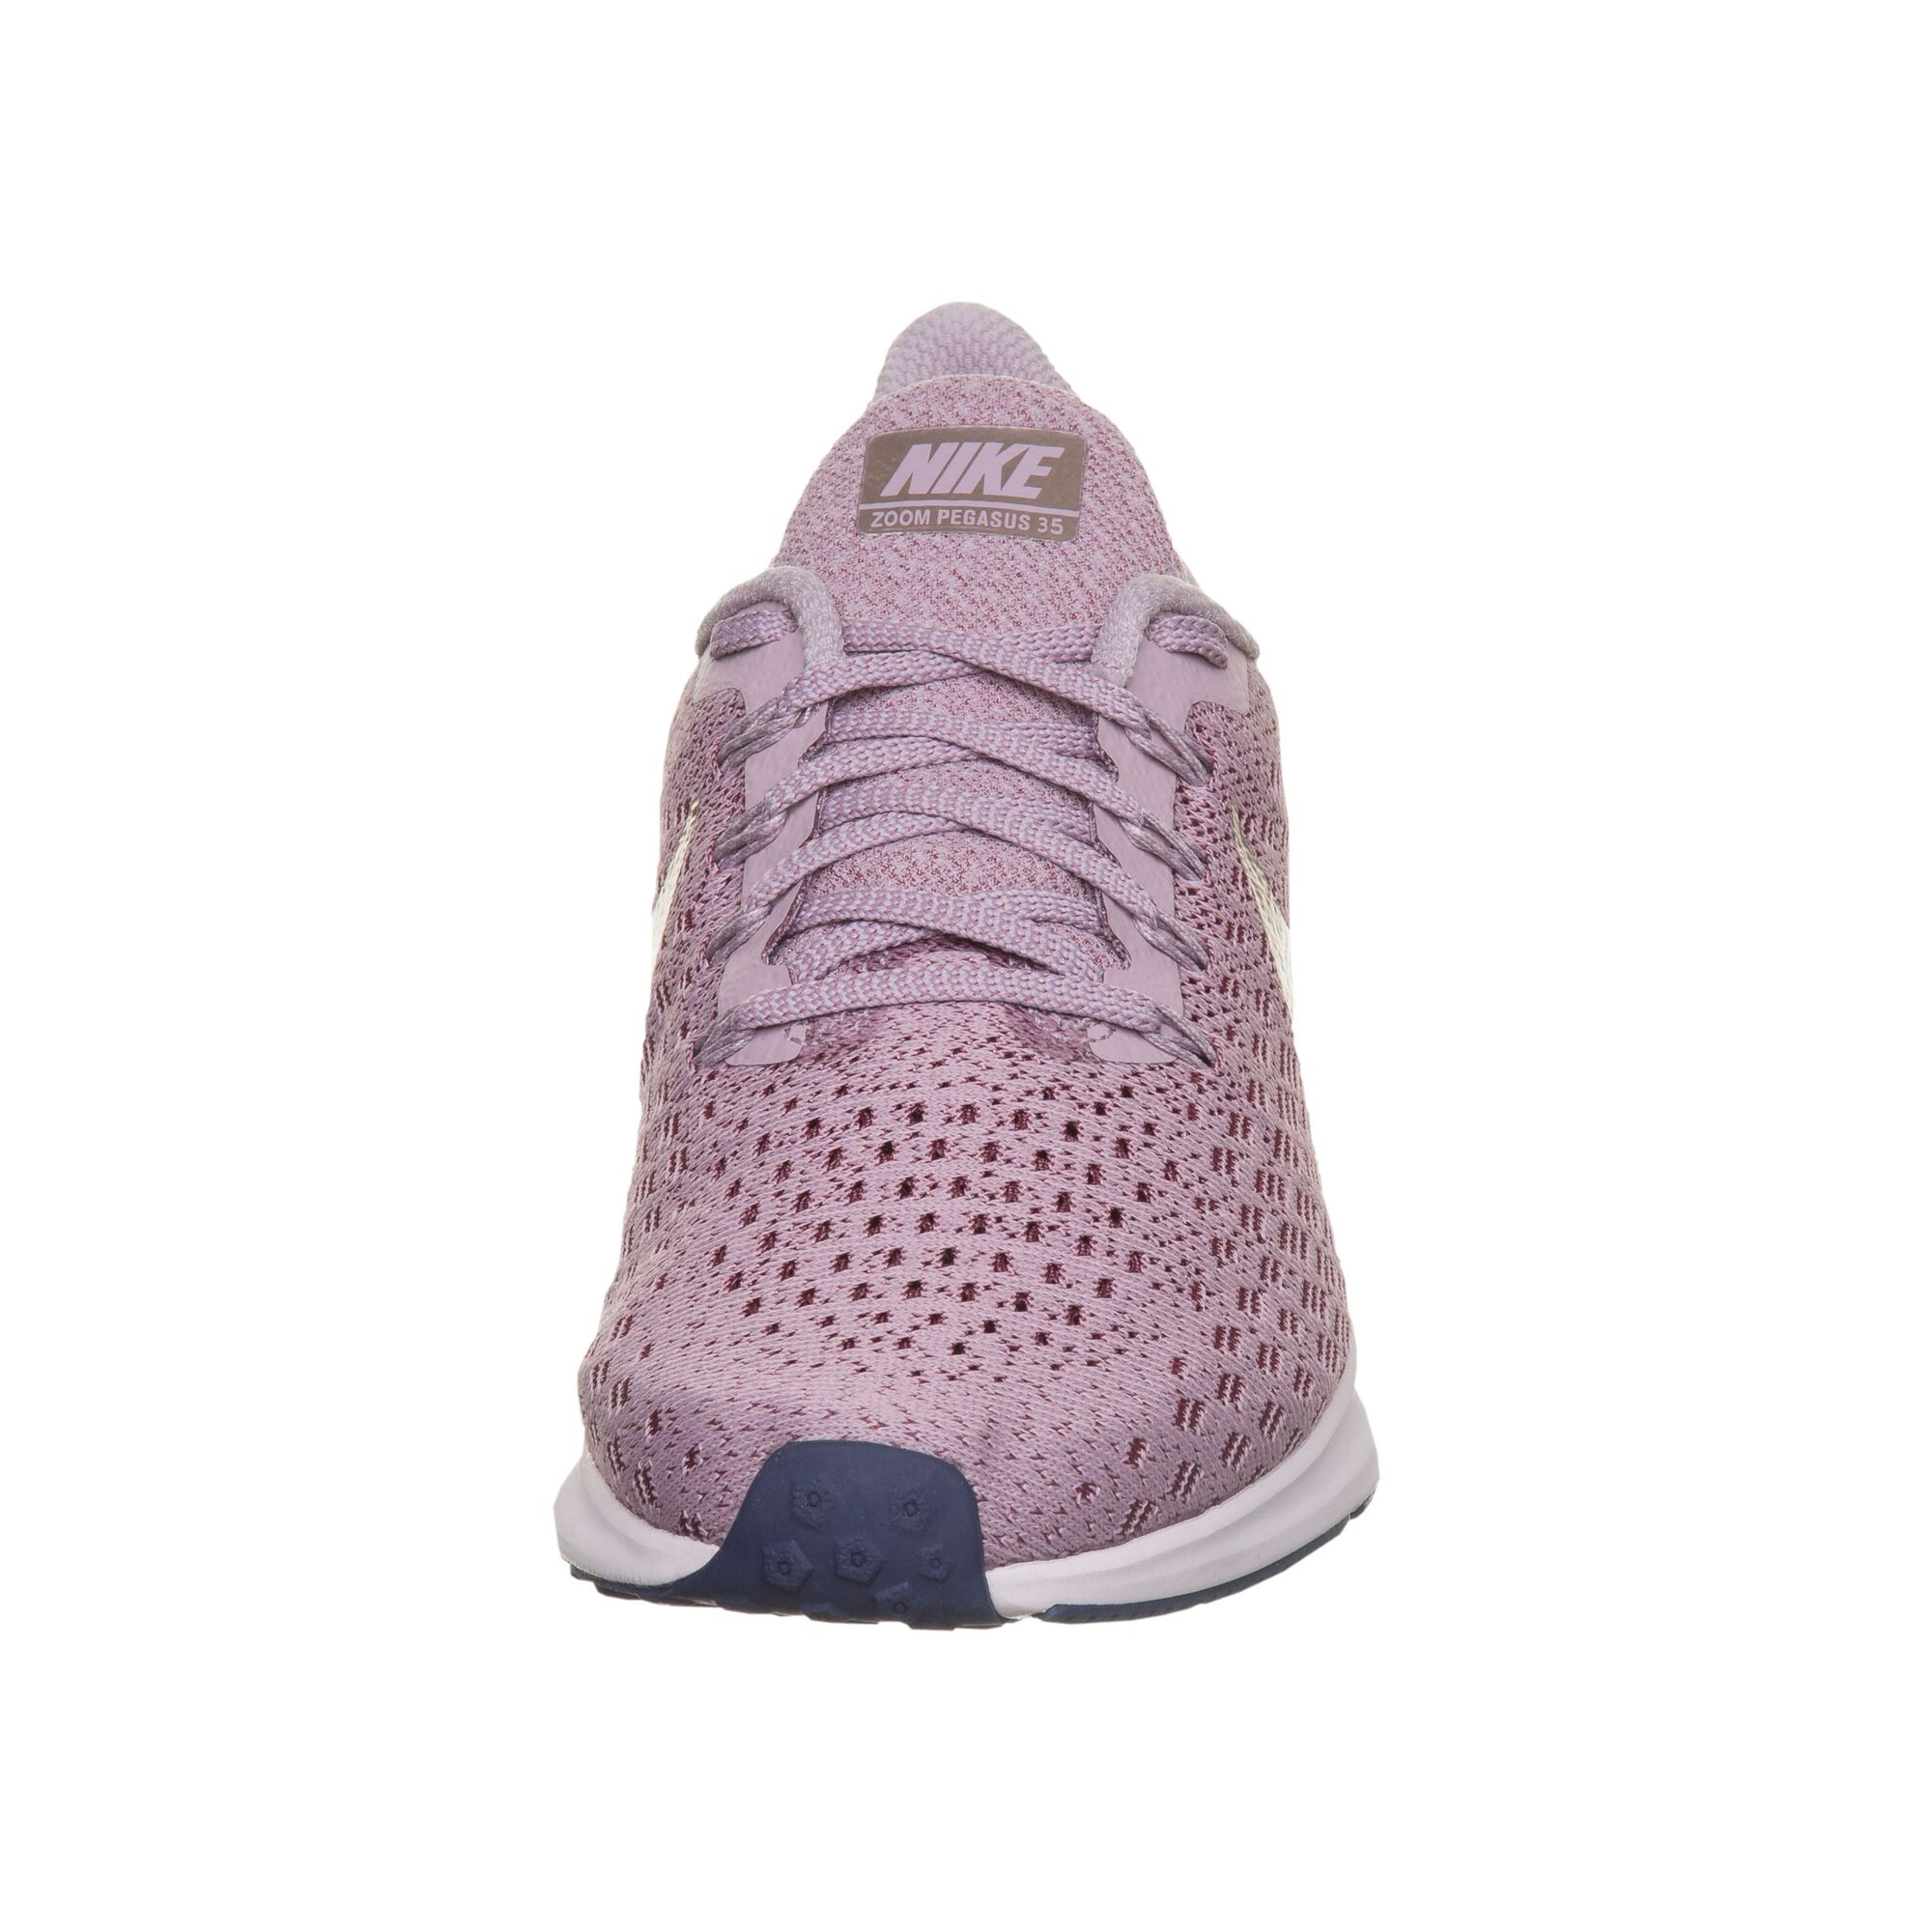 85842abd3a89 buy Nike Air Zoom Pegasus 35 Neutral Running Shoe Women - Lilac ...